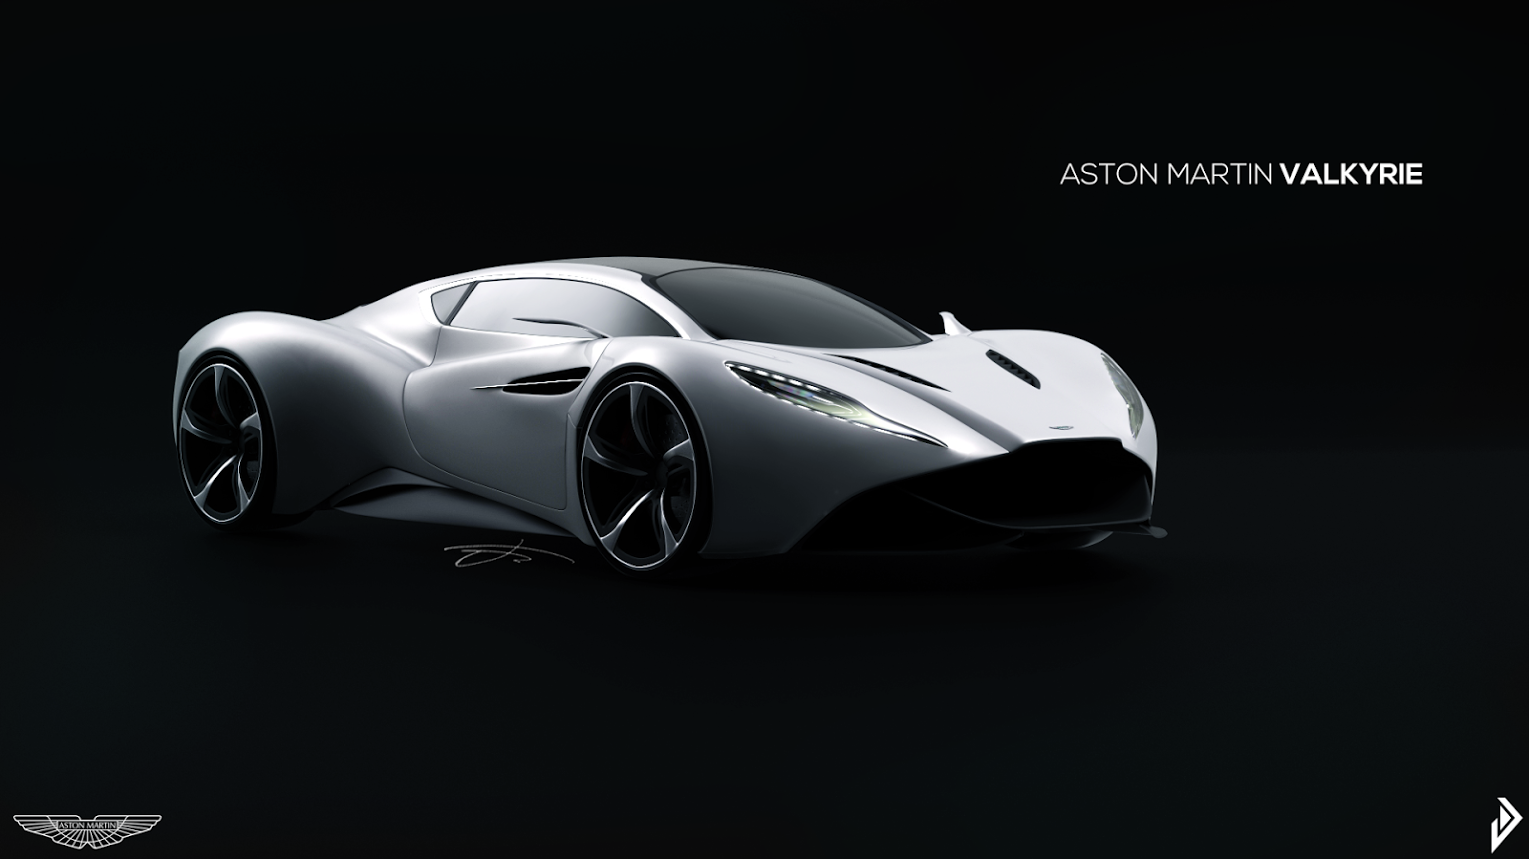 the aston martin valkyrie in pearl white! simplicity, carried to an